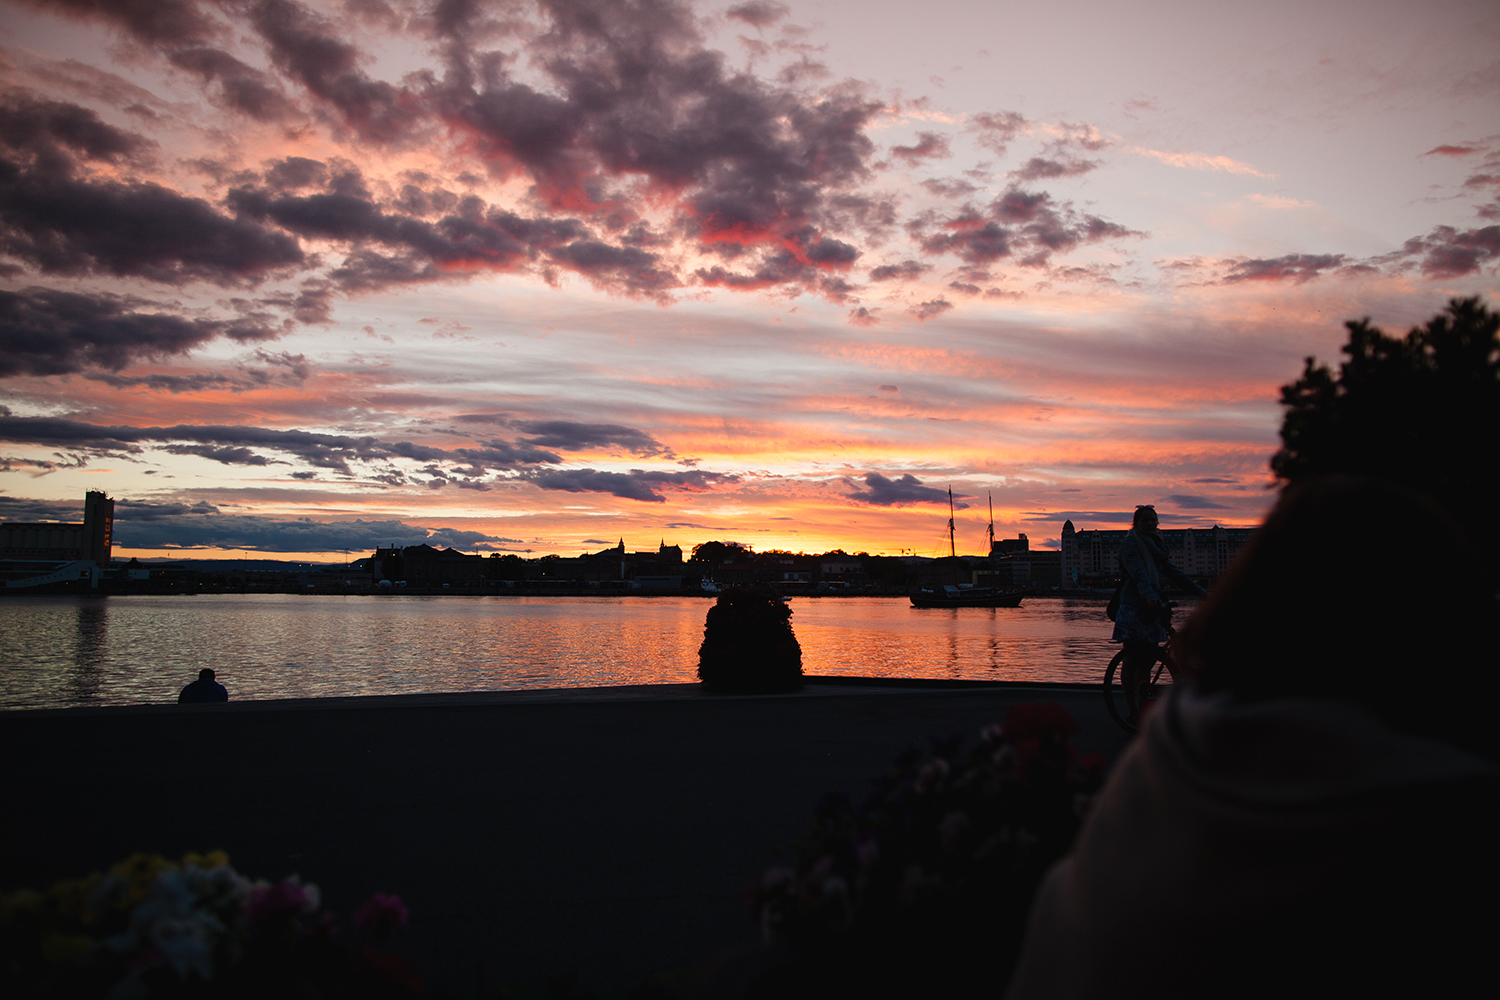 MARIEWOLLA_DINNERWITHAVIEW_04